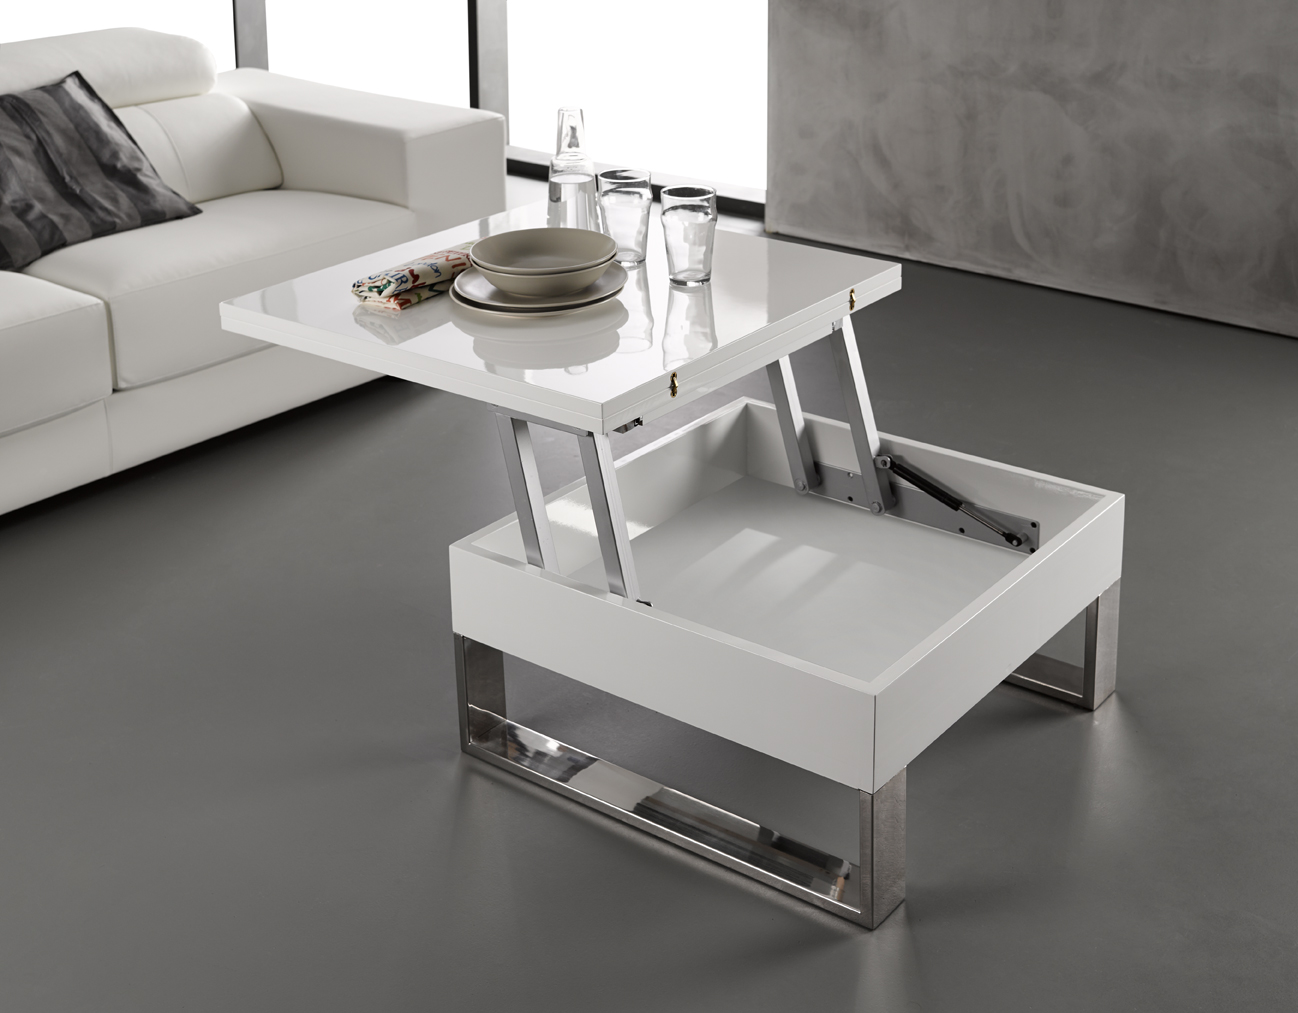 Model etable salon moderne for Modele de table de salon moderne